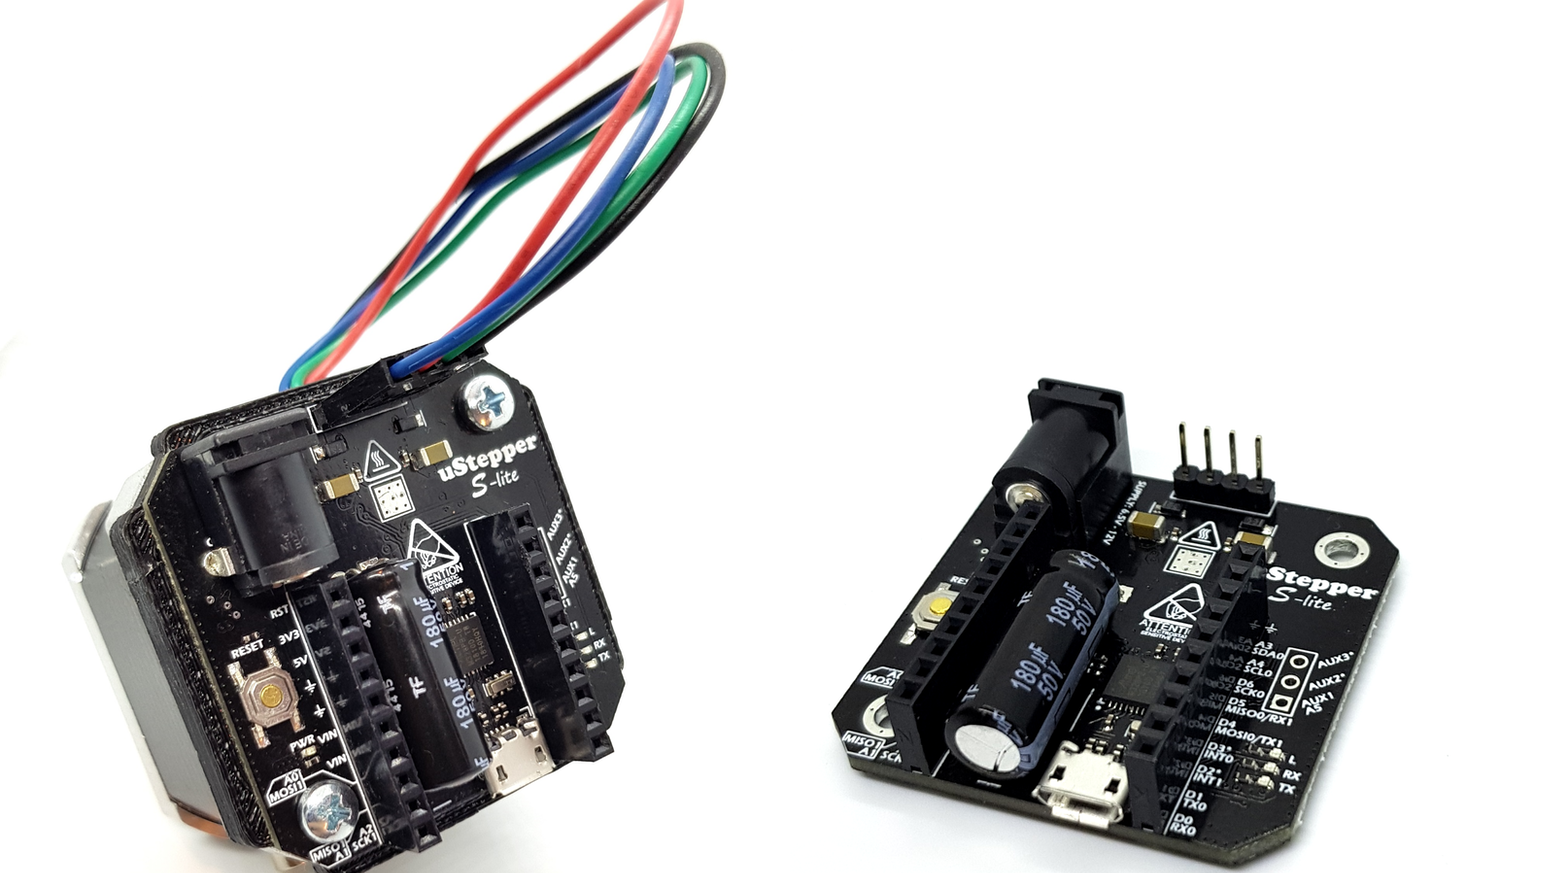 uStepper S line incorporates super silent stepper drivers, high resolution encoders and Arduino compatible MCU in a super slim design!